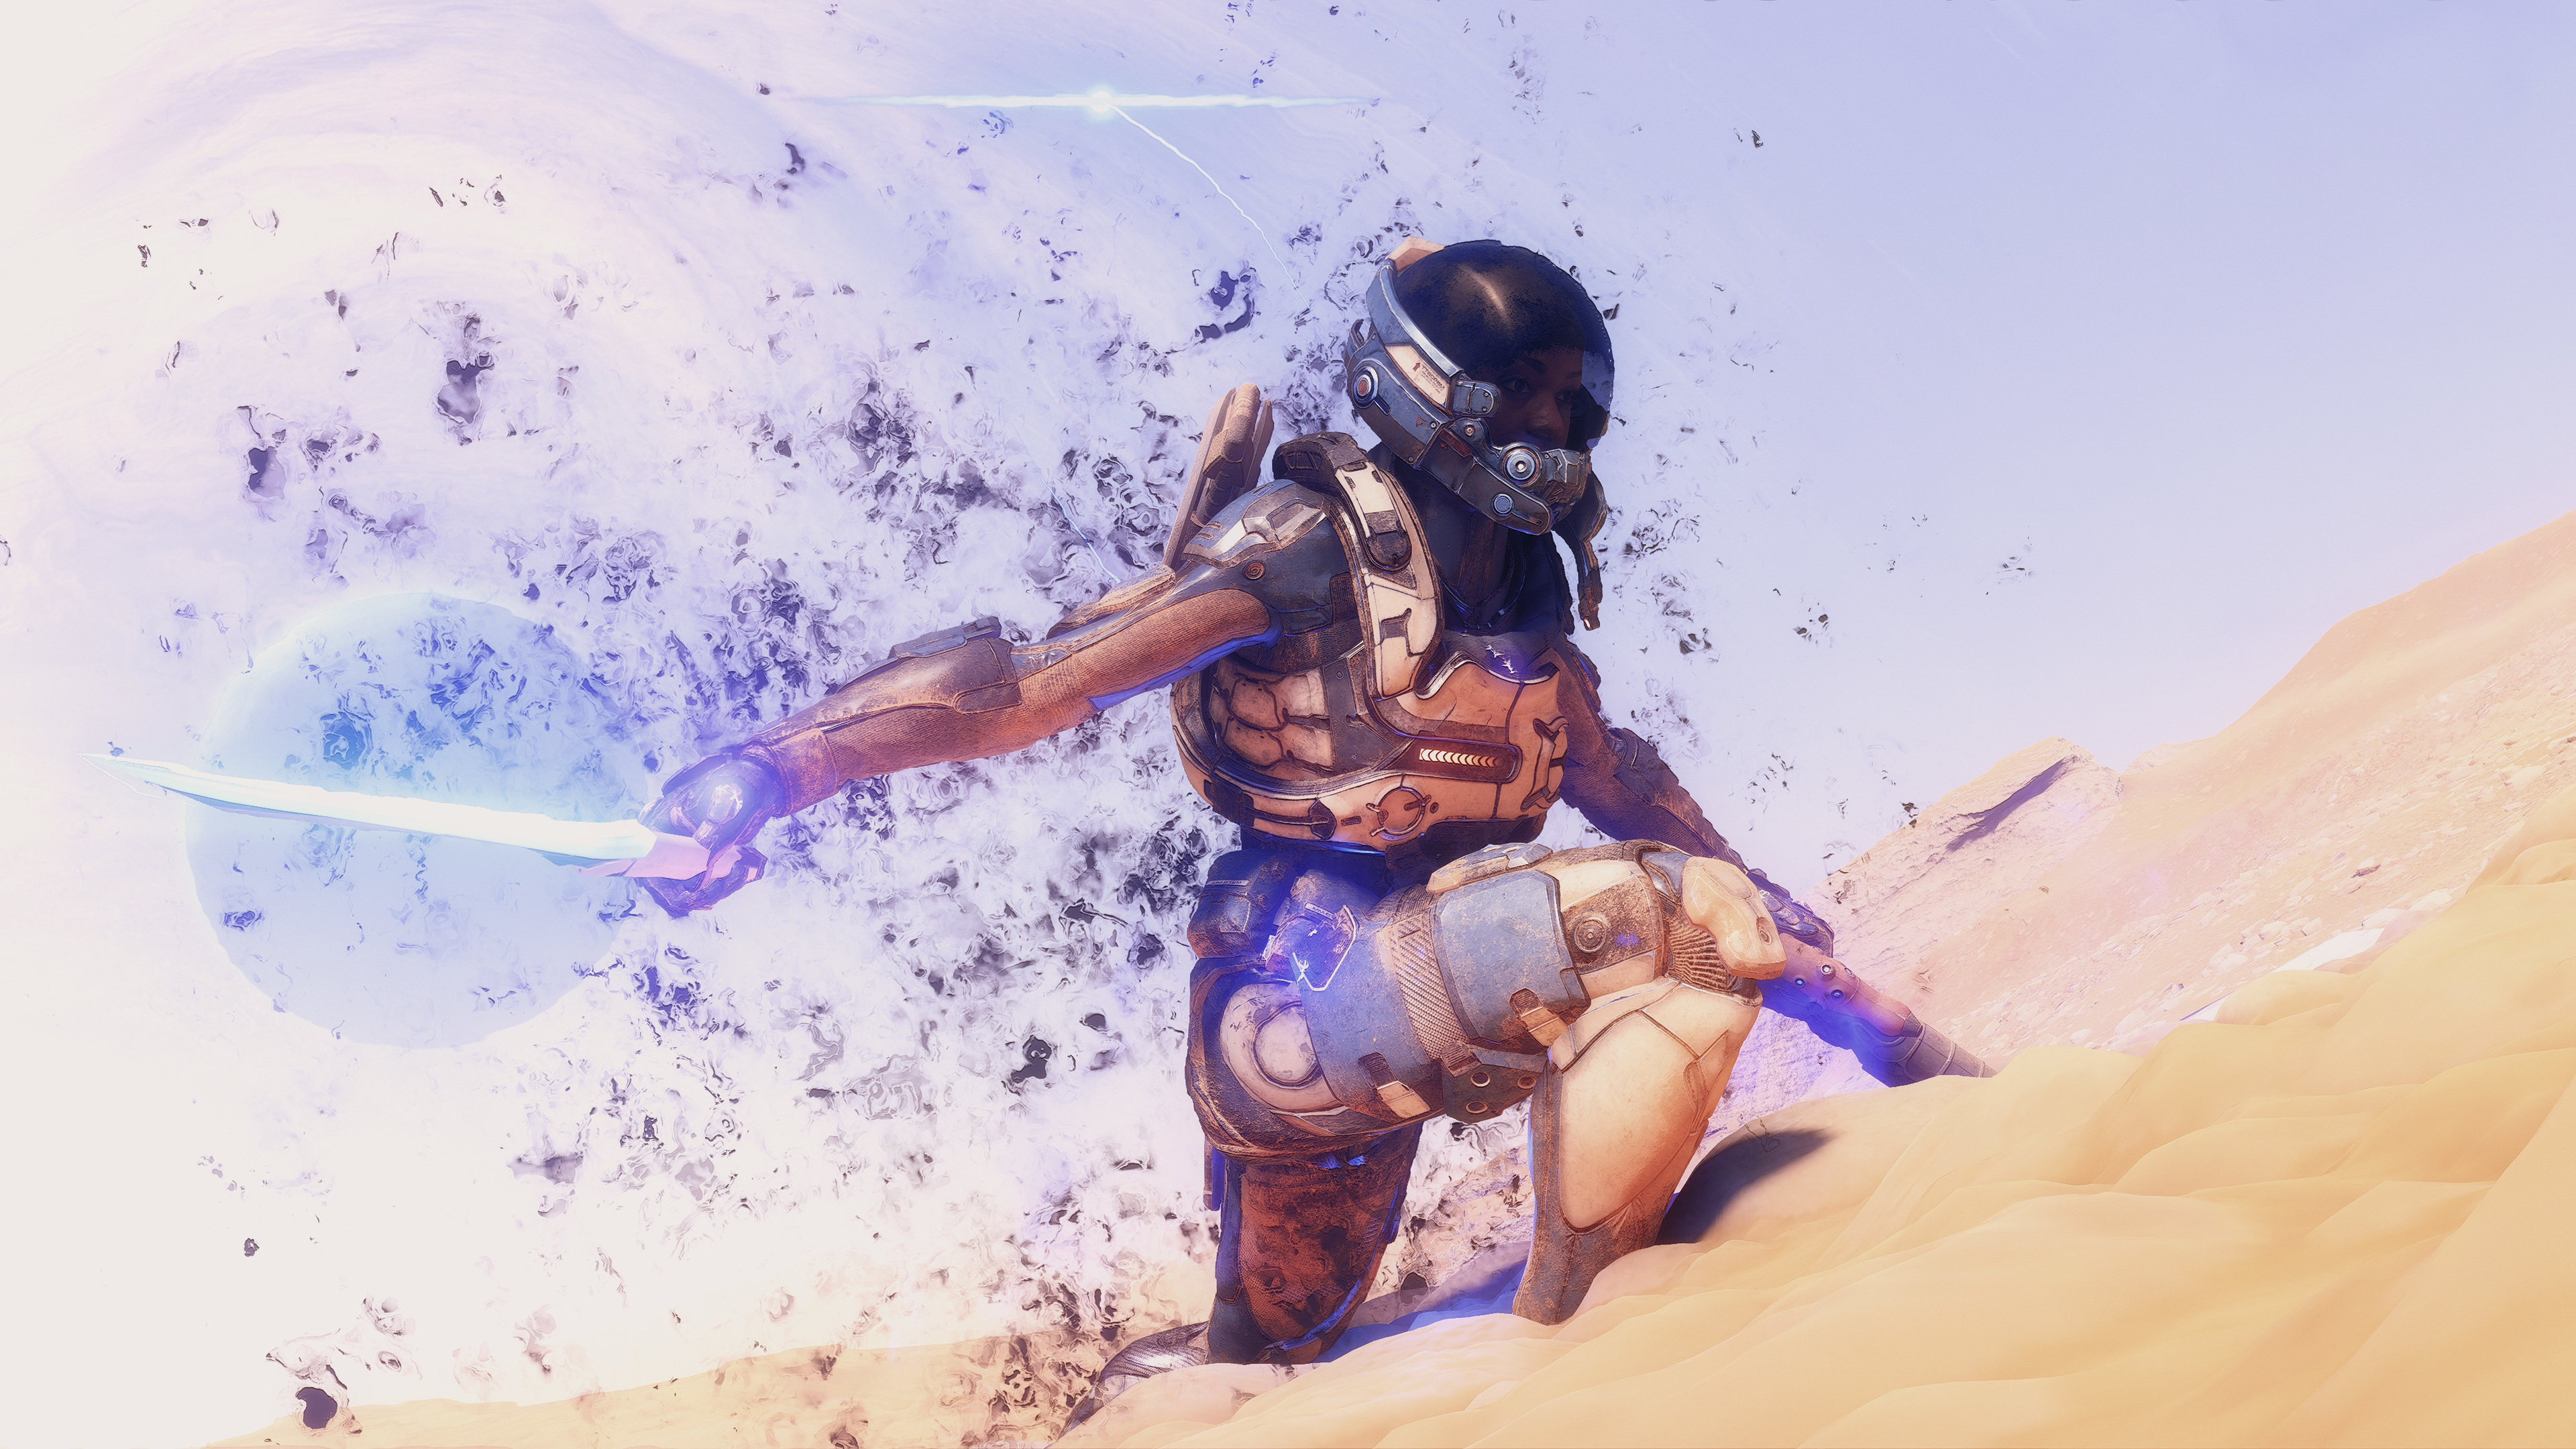 mass effect andromeda 2018 4k 1537690290 - Mass Effect Andromeda 2018 4k - xbox games wallpapers, ps games wallpapers, pc games wallpapers, mass effect andromeda wallpapers, hd-wallpapers, games wallpapers, 4k-wallpapers, 2018 games wallpapers